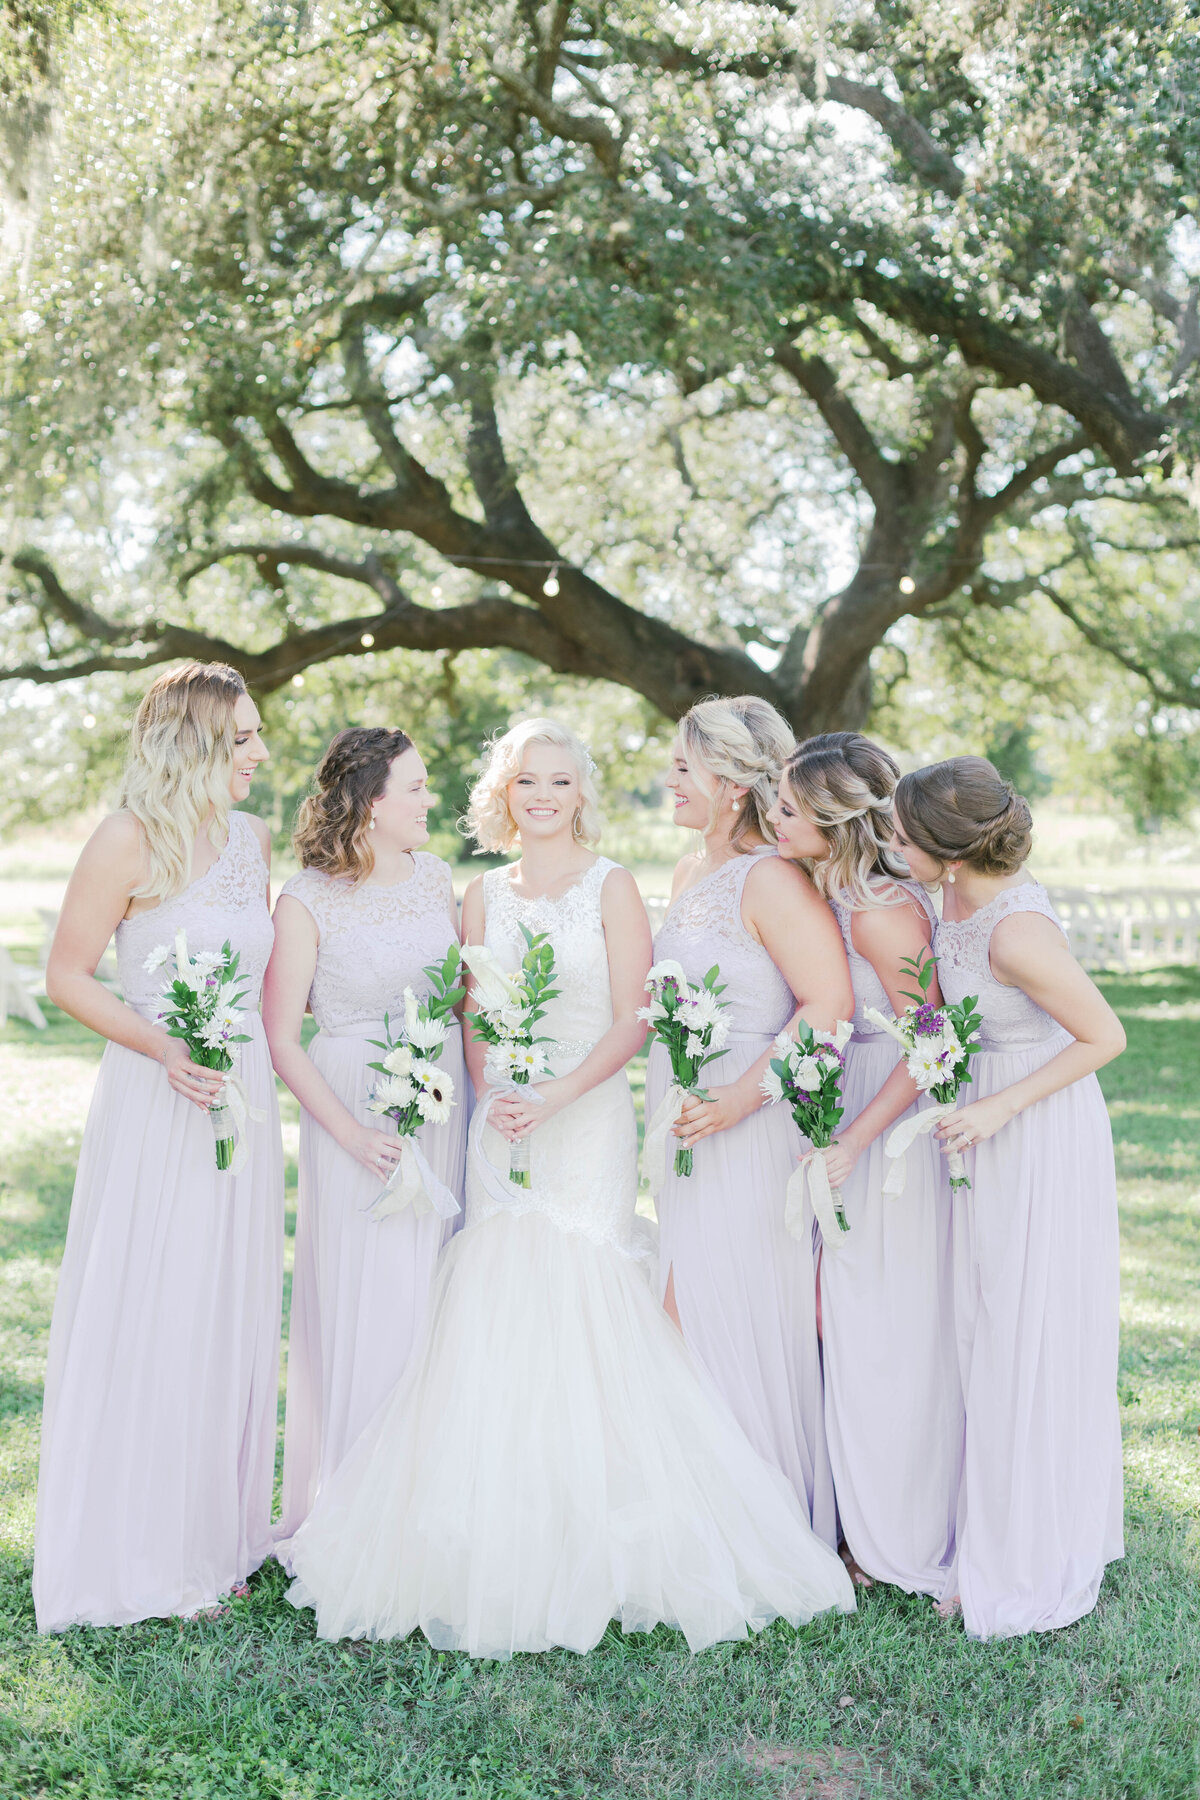 Best Wedding Photographer in Victoria, Texas | Fine Art Weddings + Destination Weddings by Jenny King Photography